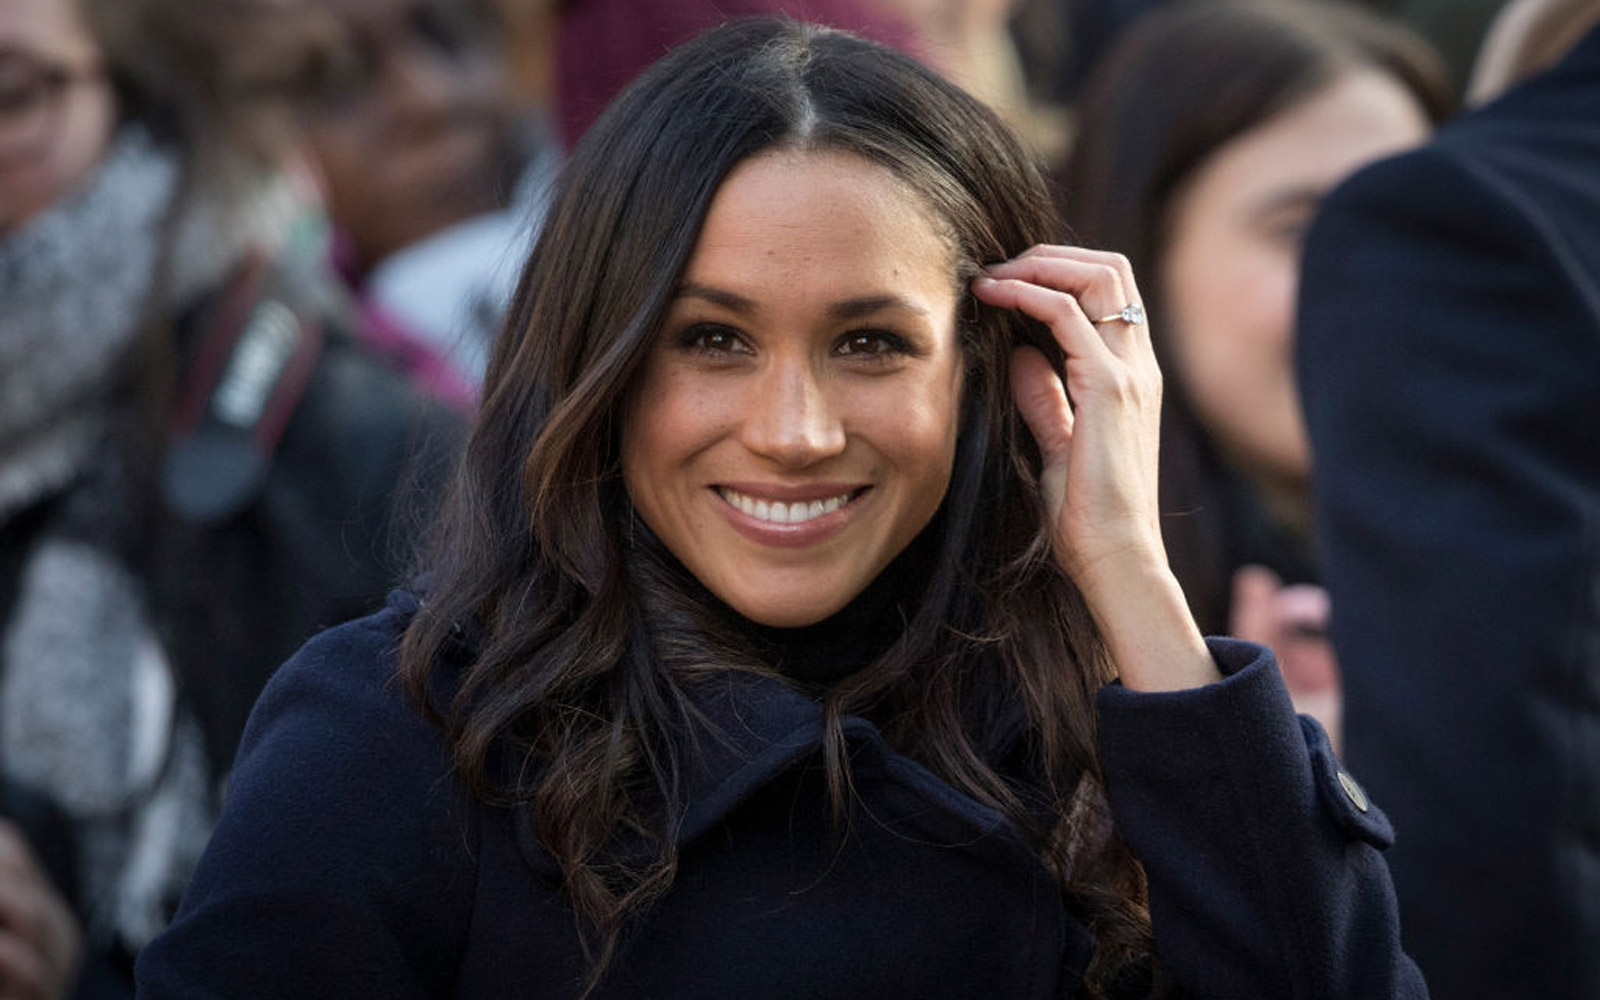 Meghan Markle arrives at the Terrance Higgins Trust World AIDS Day charity fair at Nottingham Contemporary on December 1, 2017 in Nottingham, England